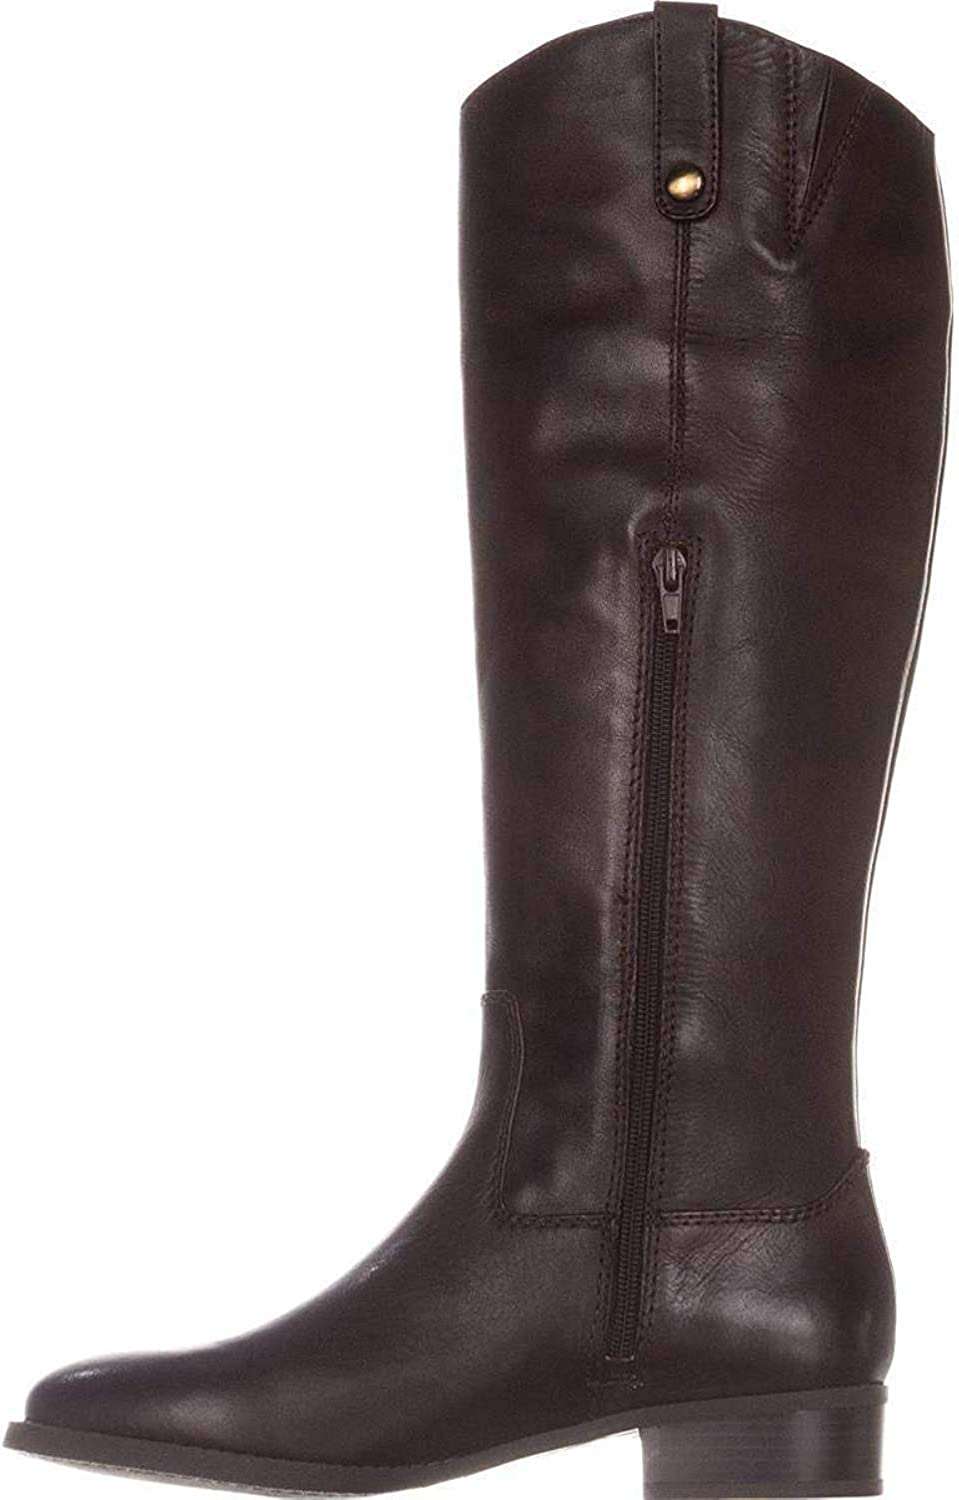 INC International Concepts Womens Fawne Leather Round Toe Chocolate Size 9.5